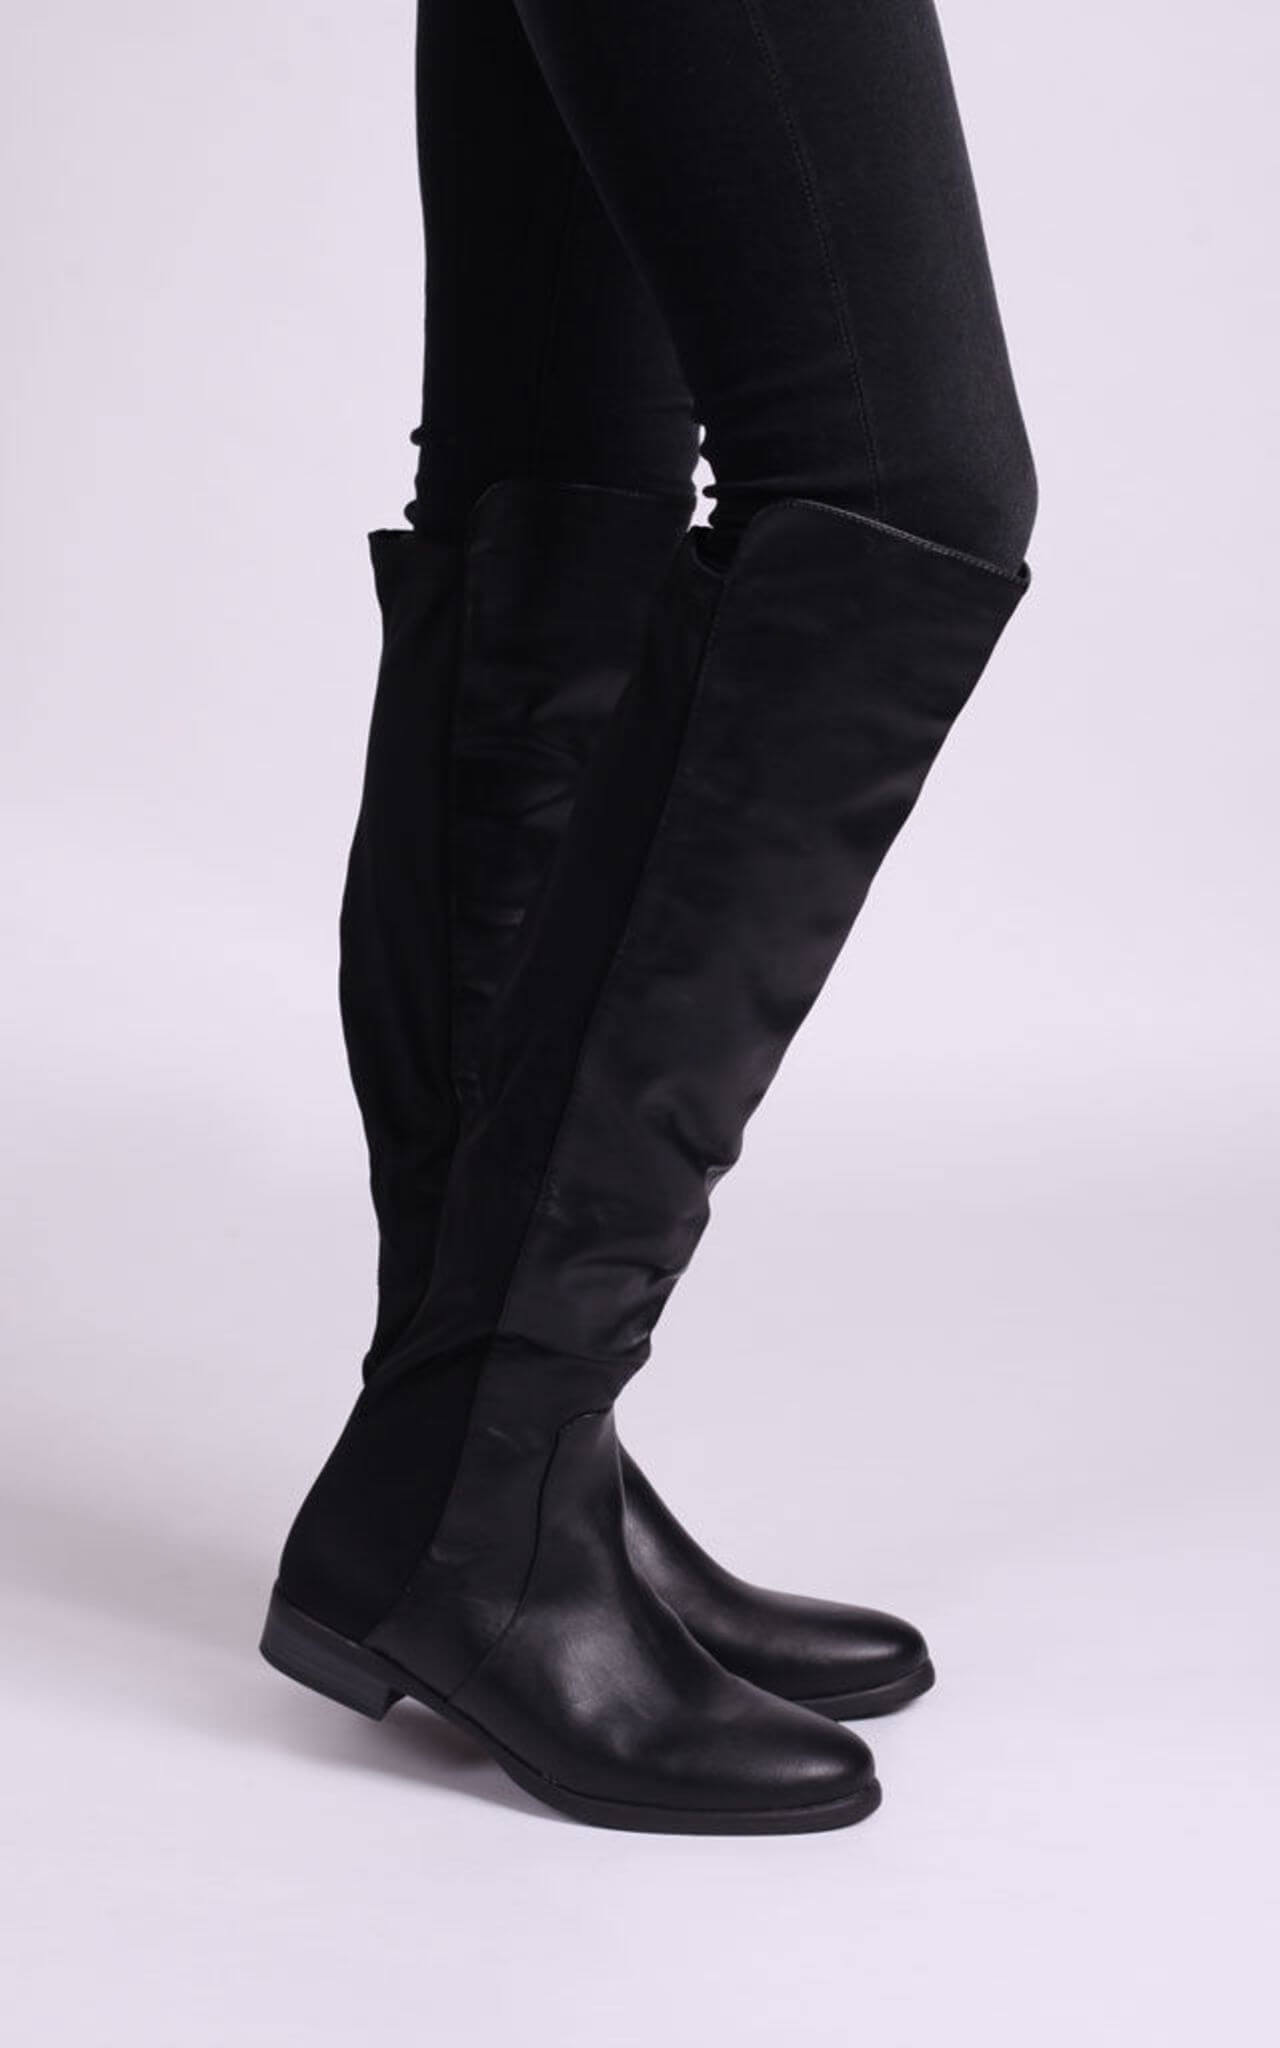 Model wears flat soled round toes boots over jeans